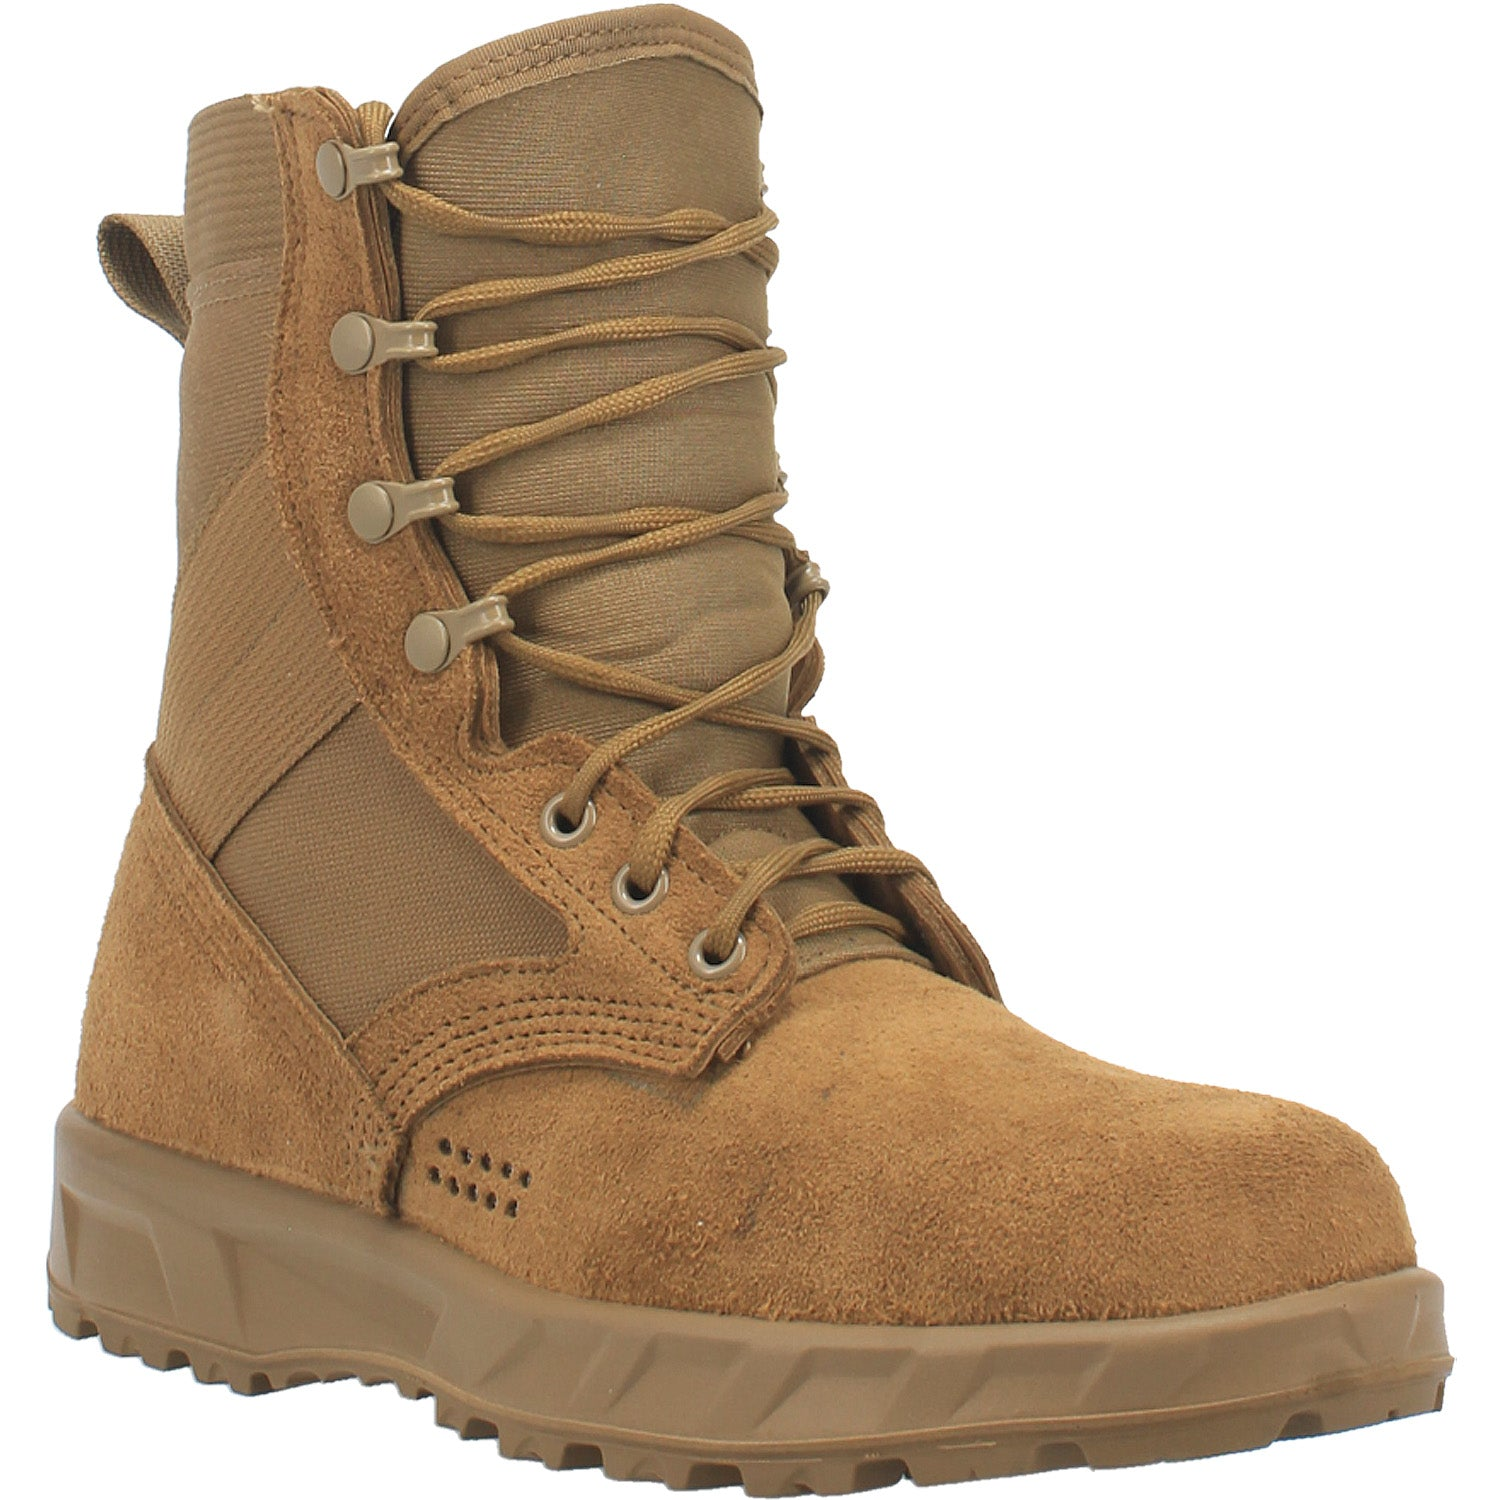 T2 Ultra Light Hot Weather Combat Boot 14940793077802